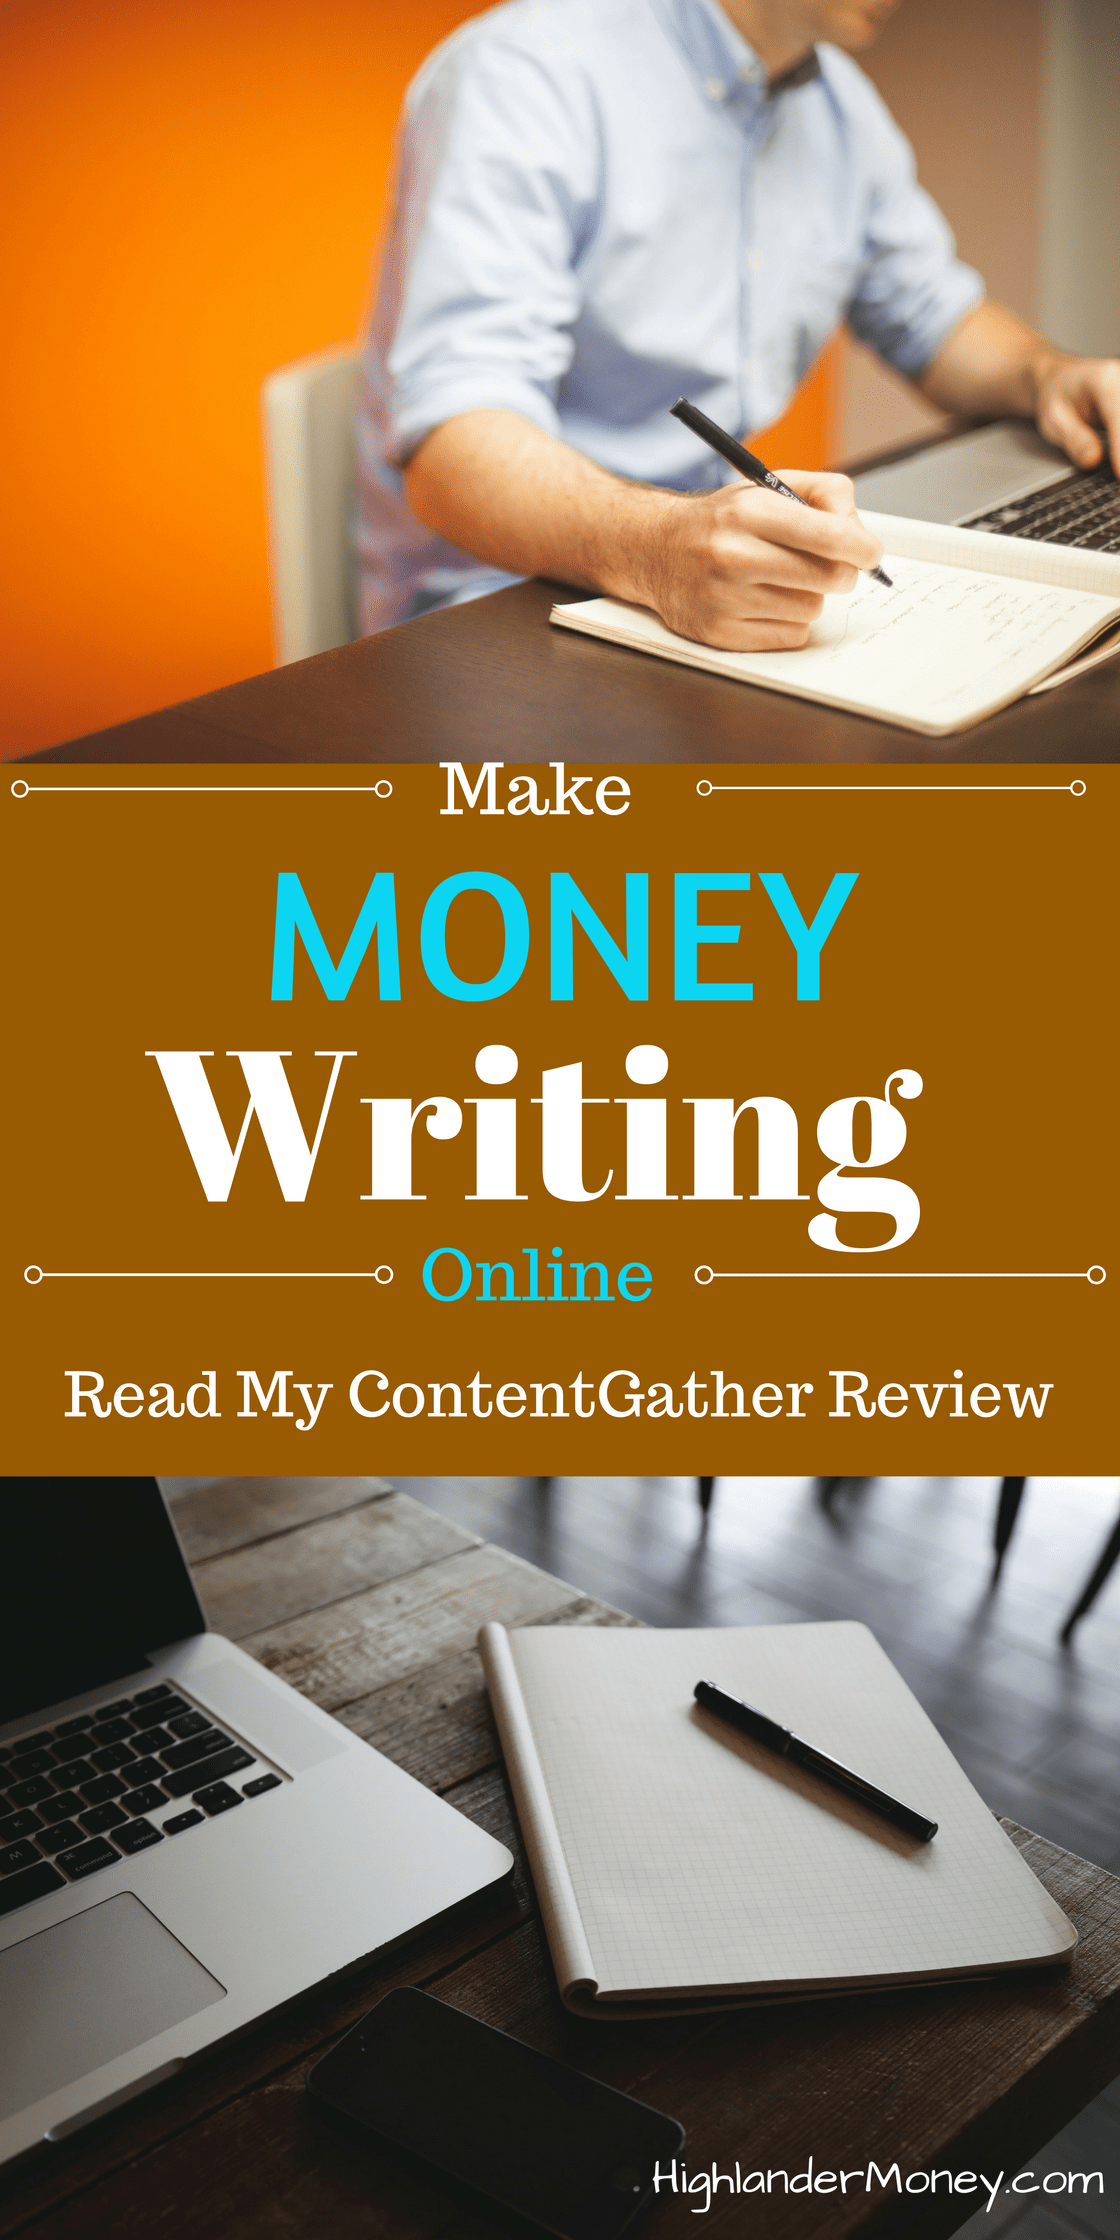 contentgather review highlander money make money online writing